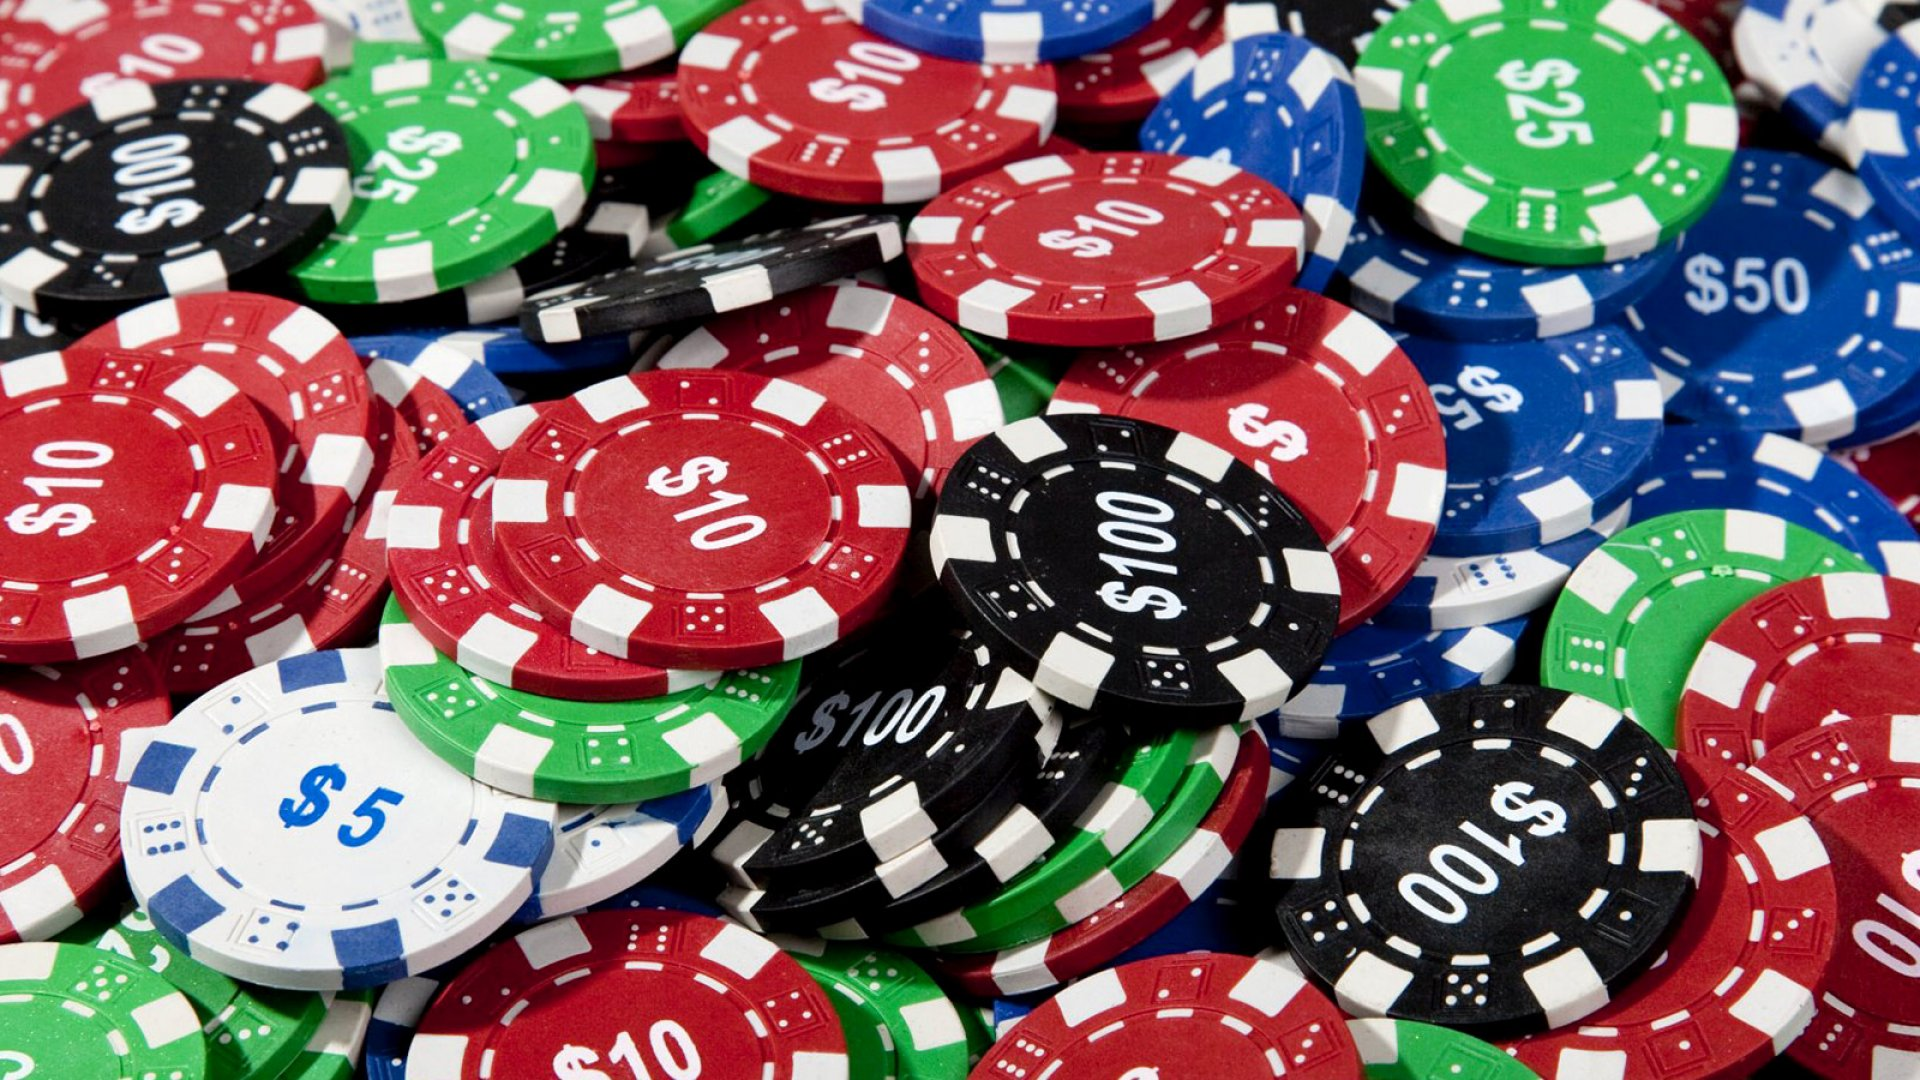 online casinos offer reduced stakes under $ 10?